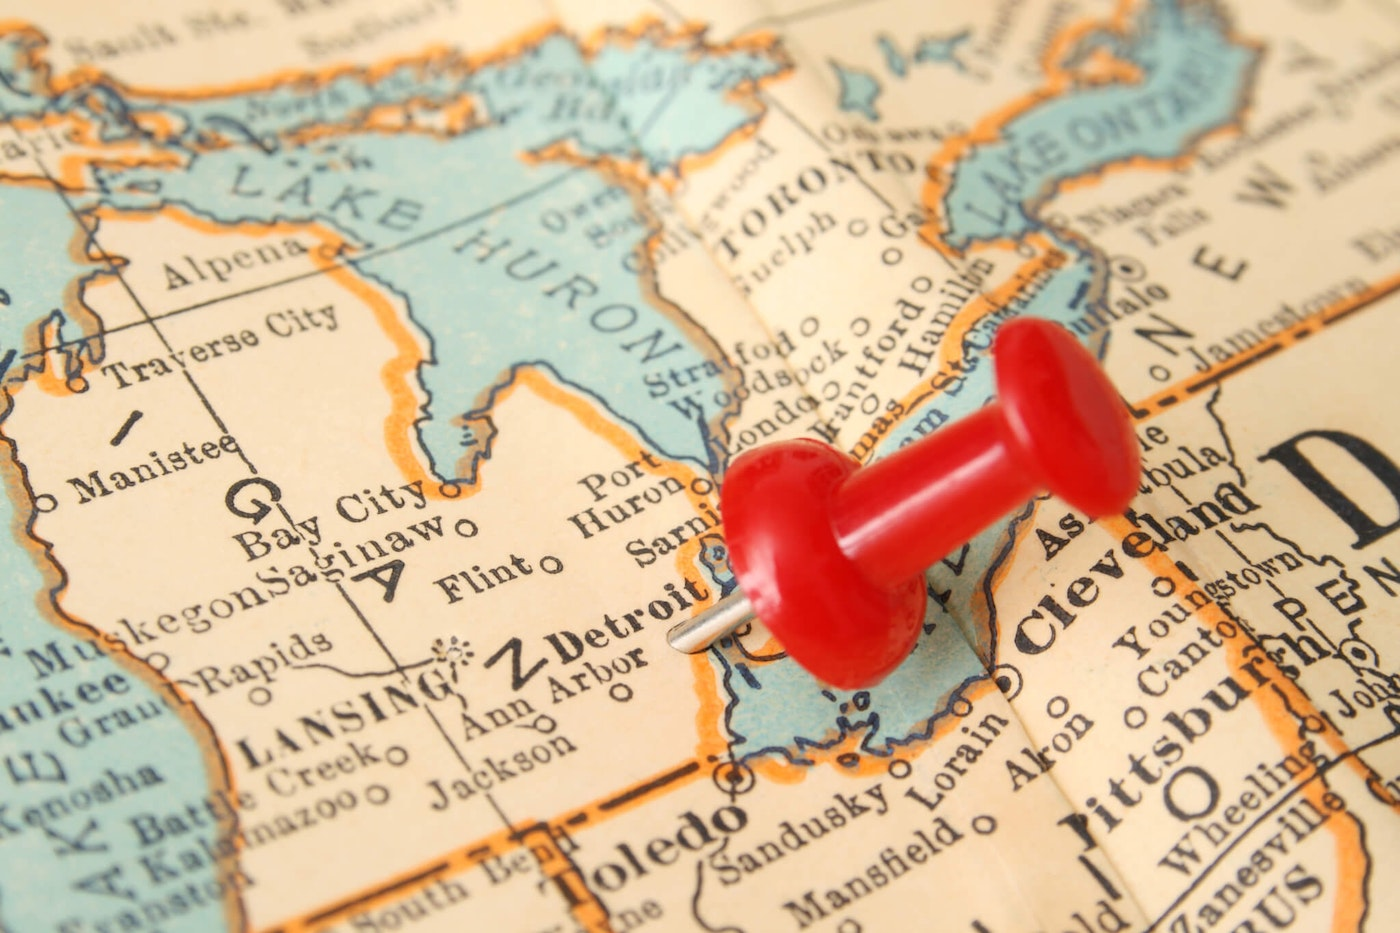 Red pushpin pointing to Detroit city in more than fifty years old map